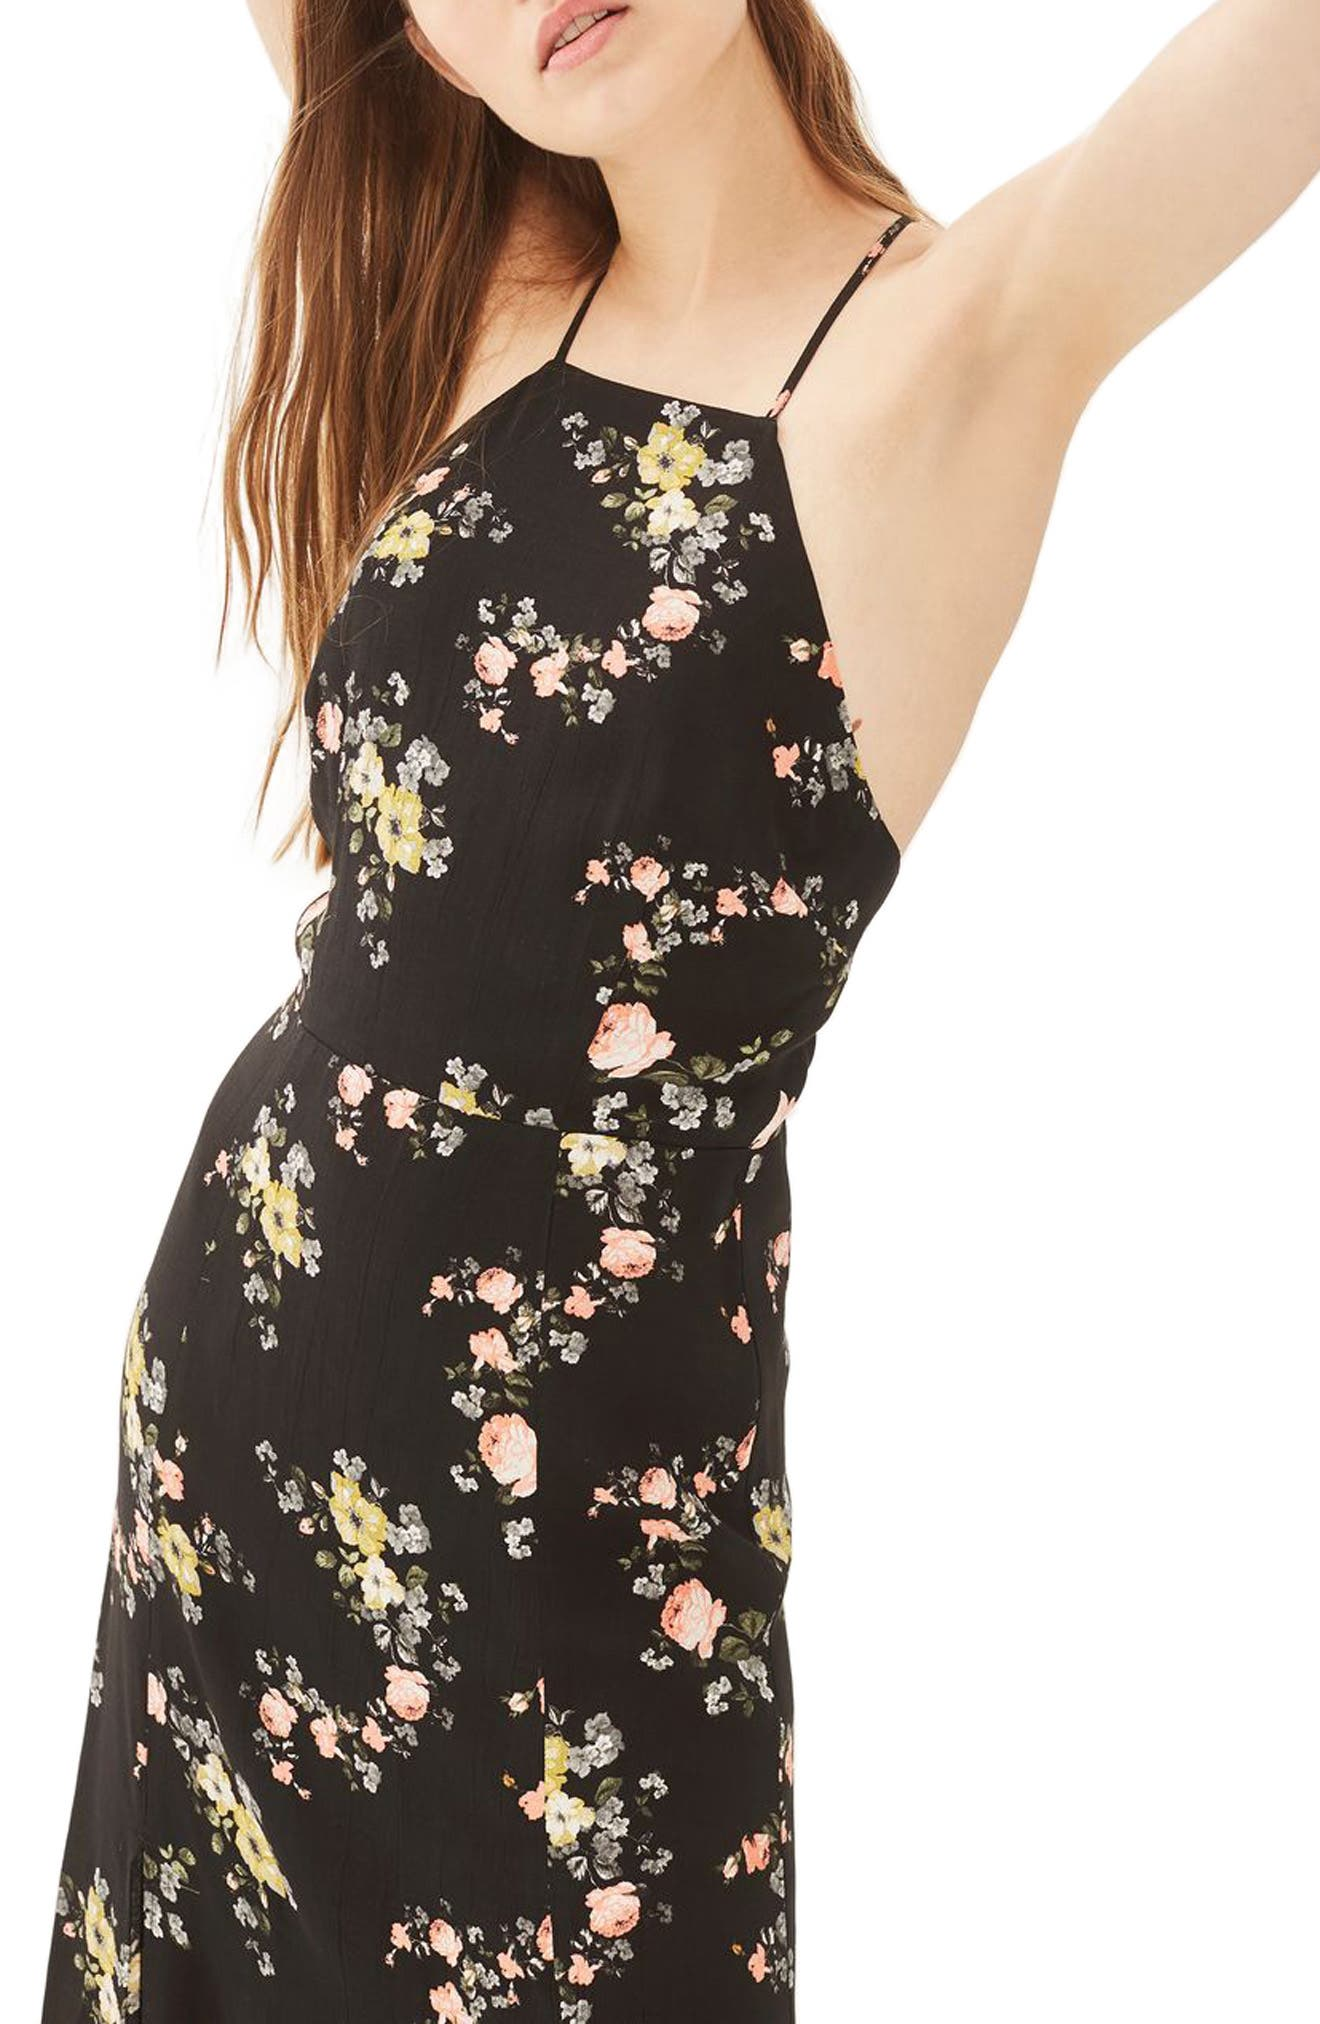 Topshop Floral Square Neck Midi Dress